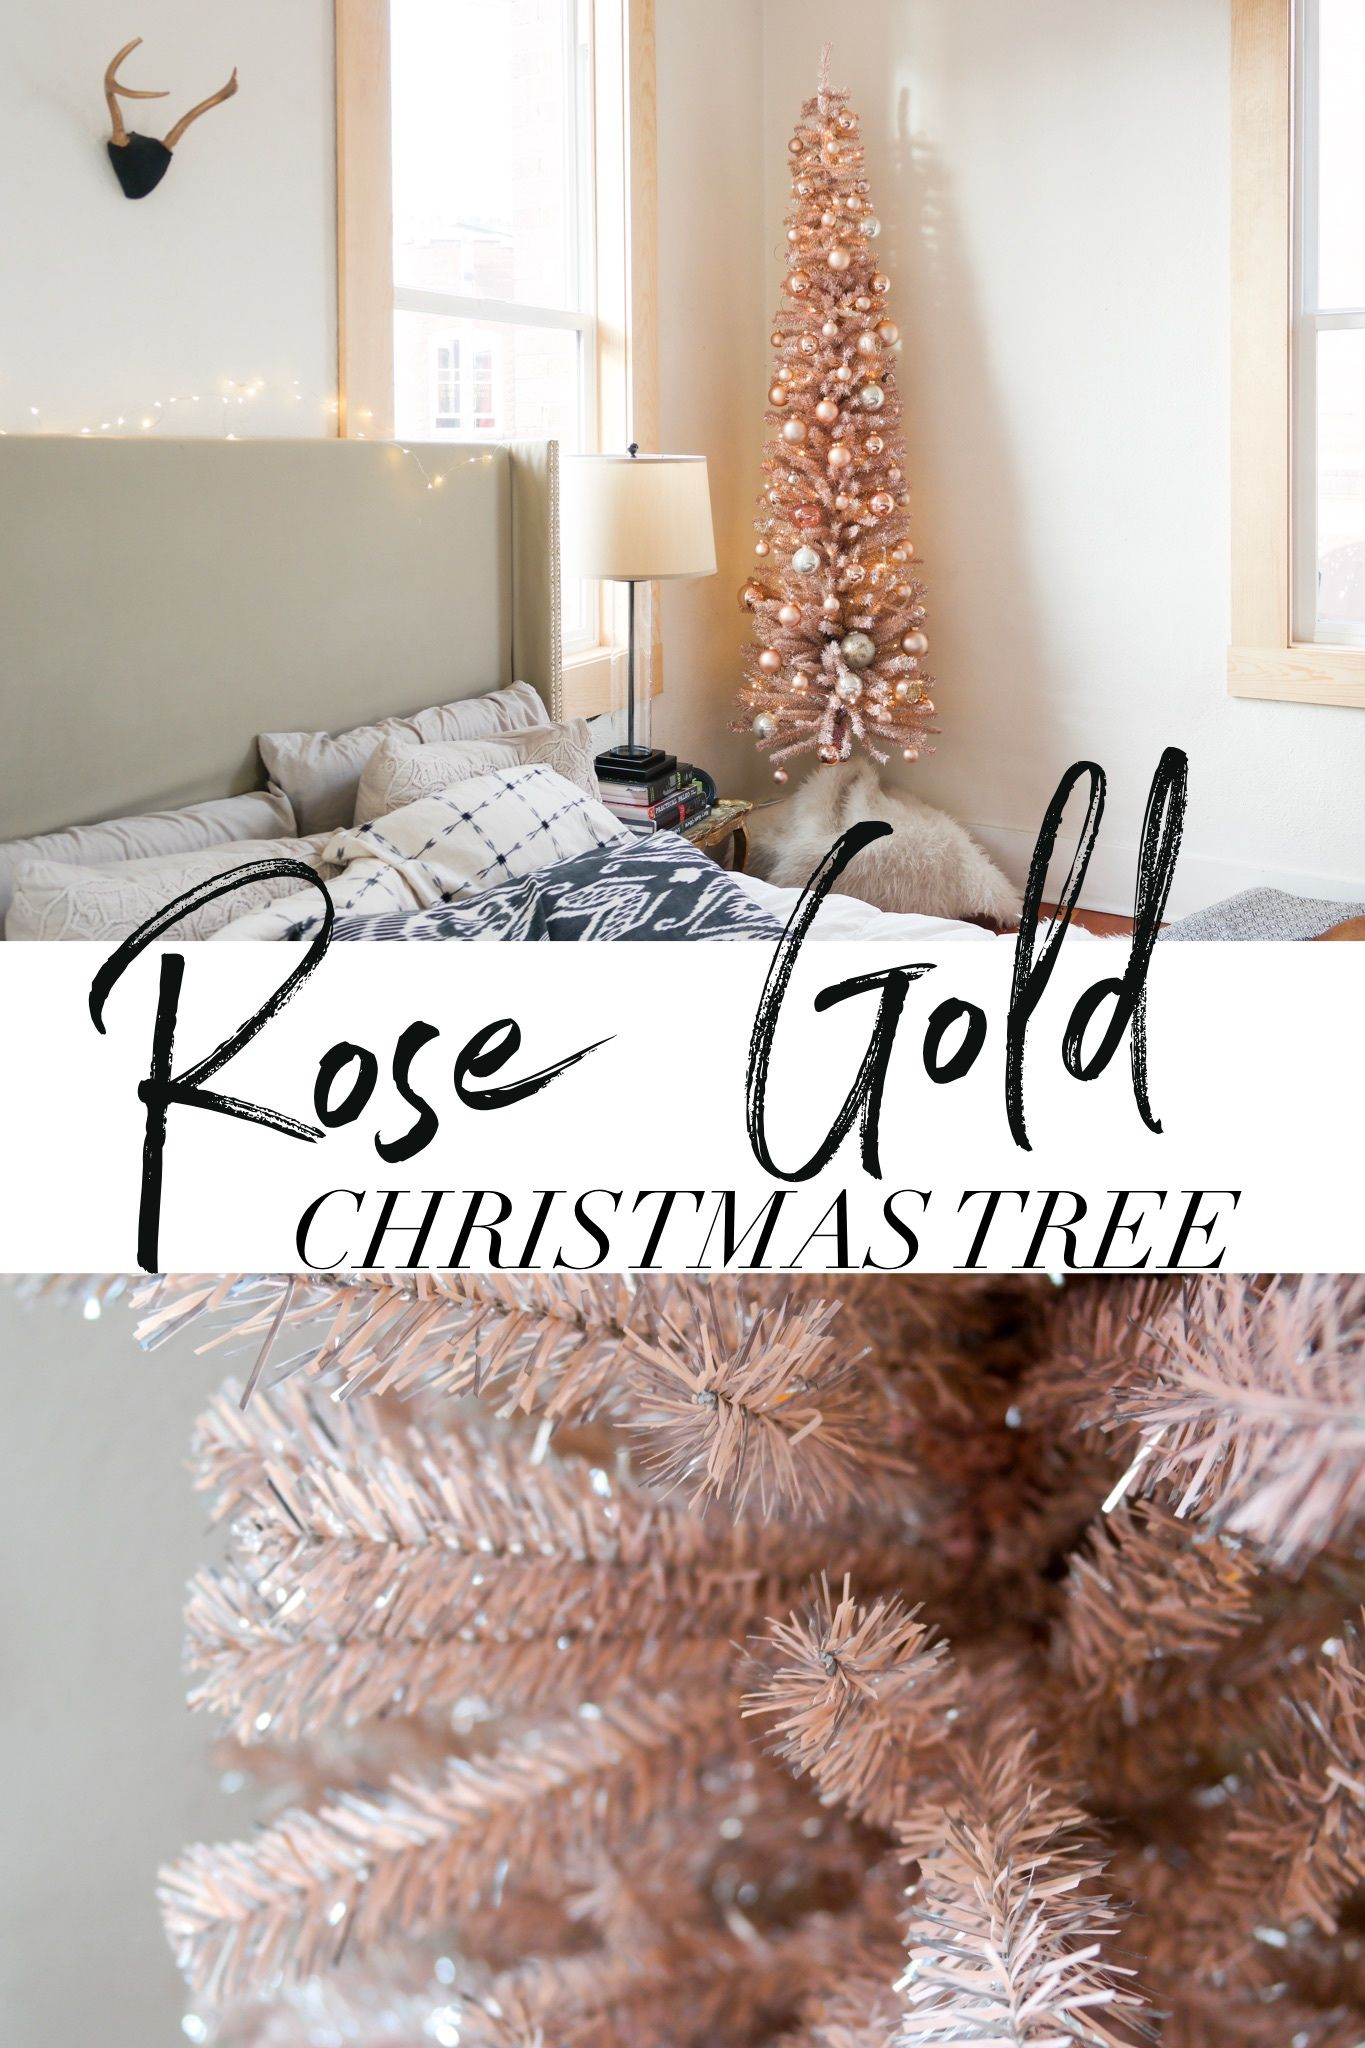 I decided on a Rose Gold Christmas